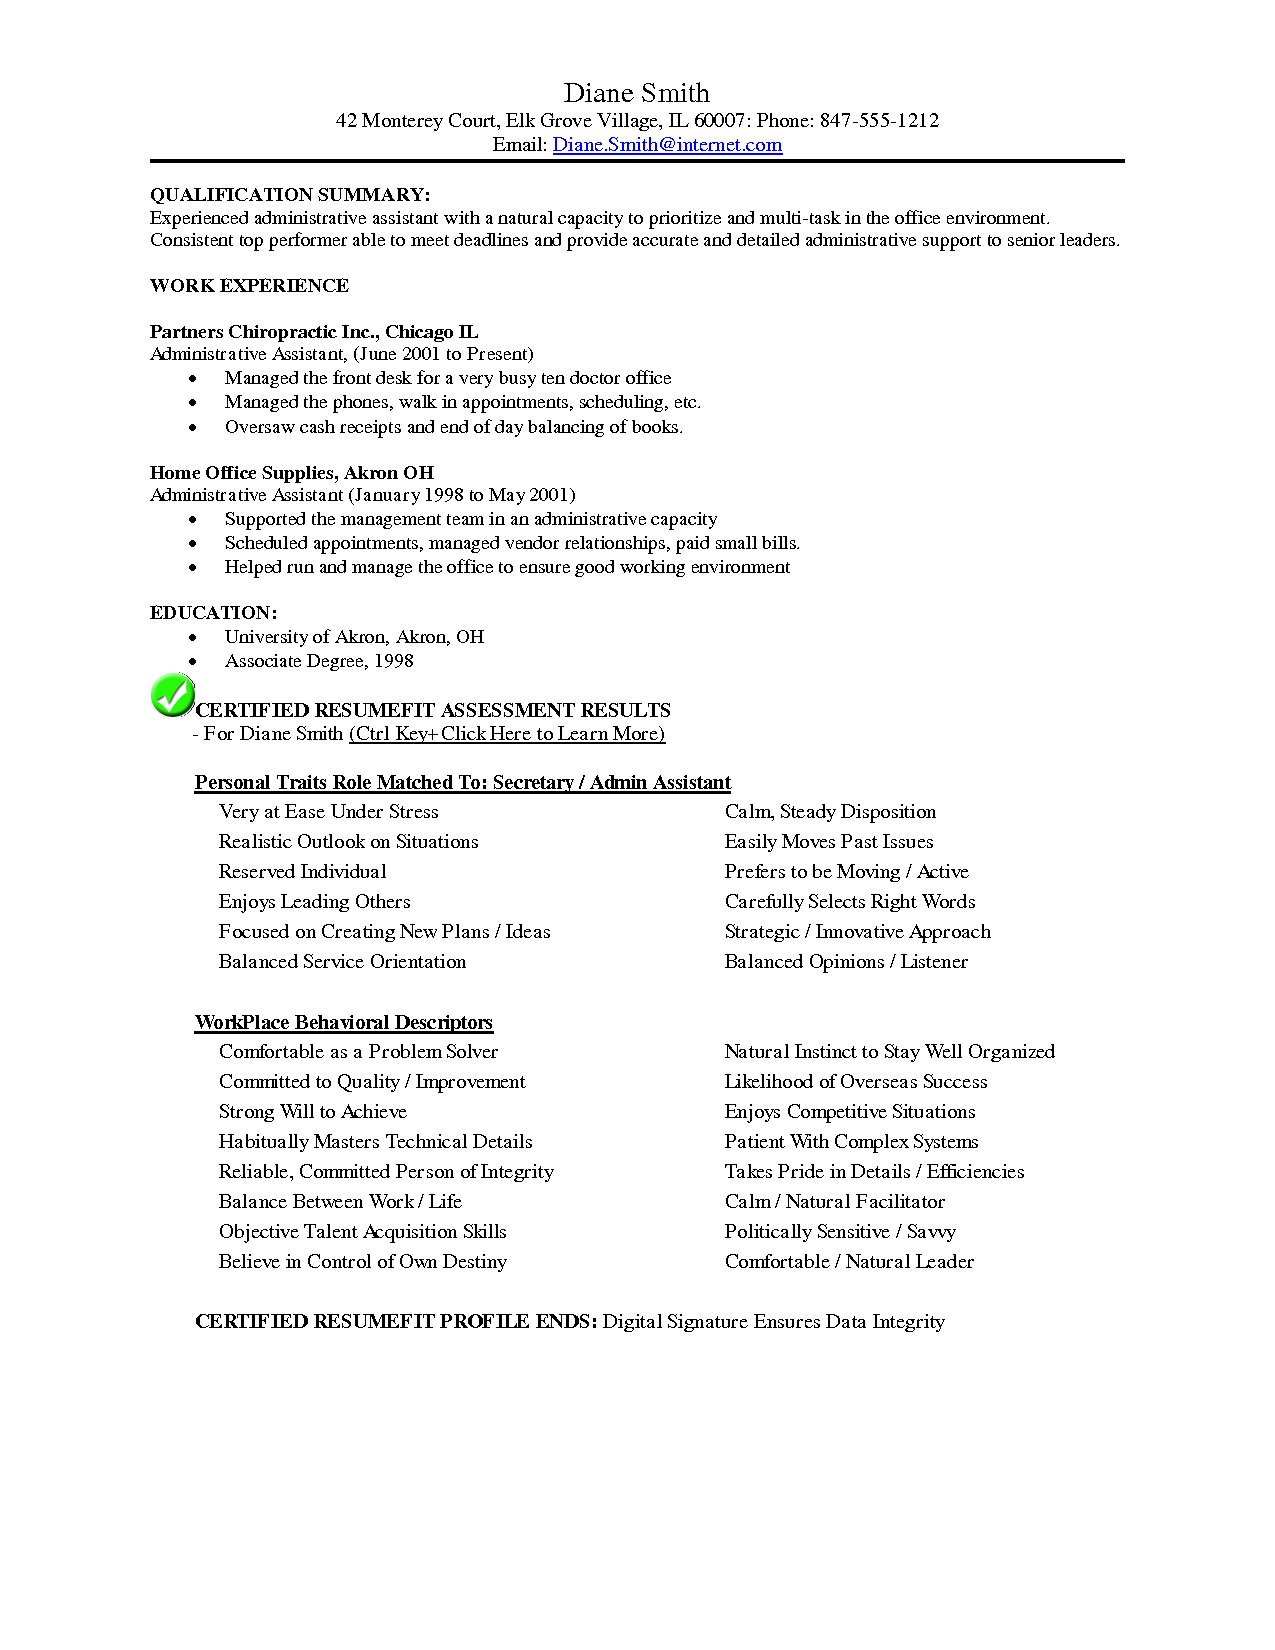 Medical Office assistant Resume Sample - Chiropractic Resume Example Resumes Pinterest